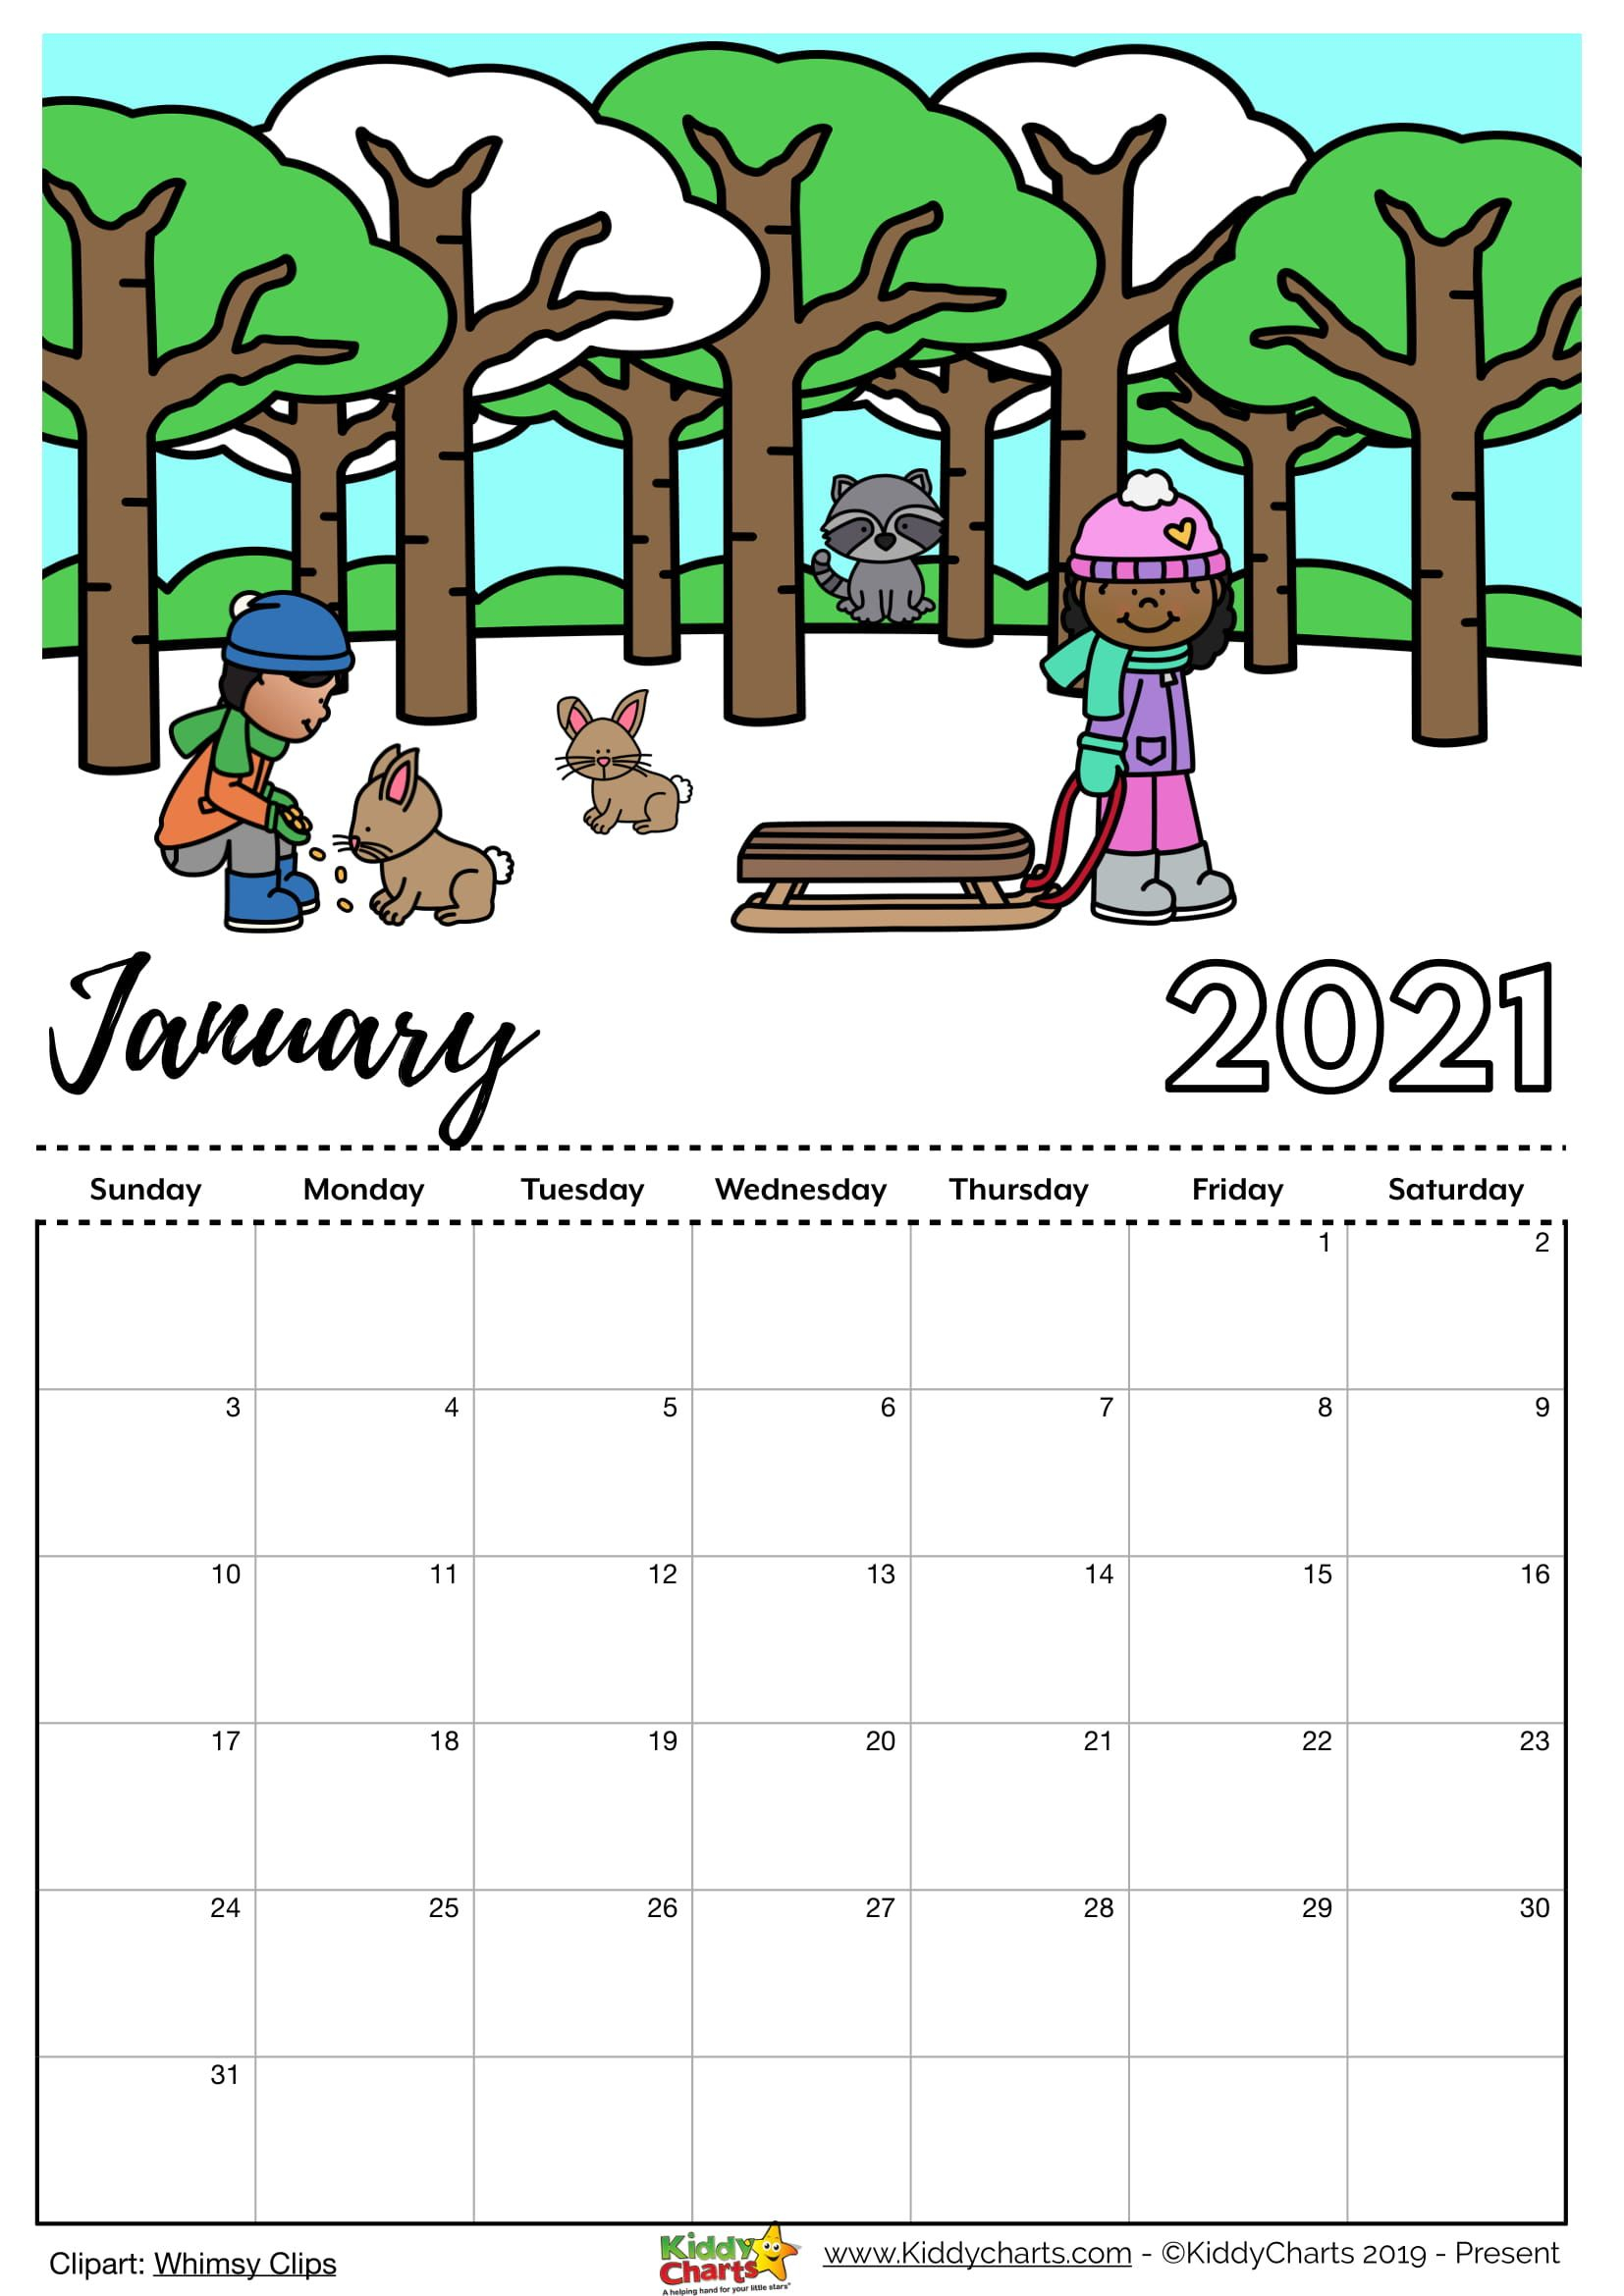 Check Our New Free Printable 2021 Calendar! In 2020